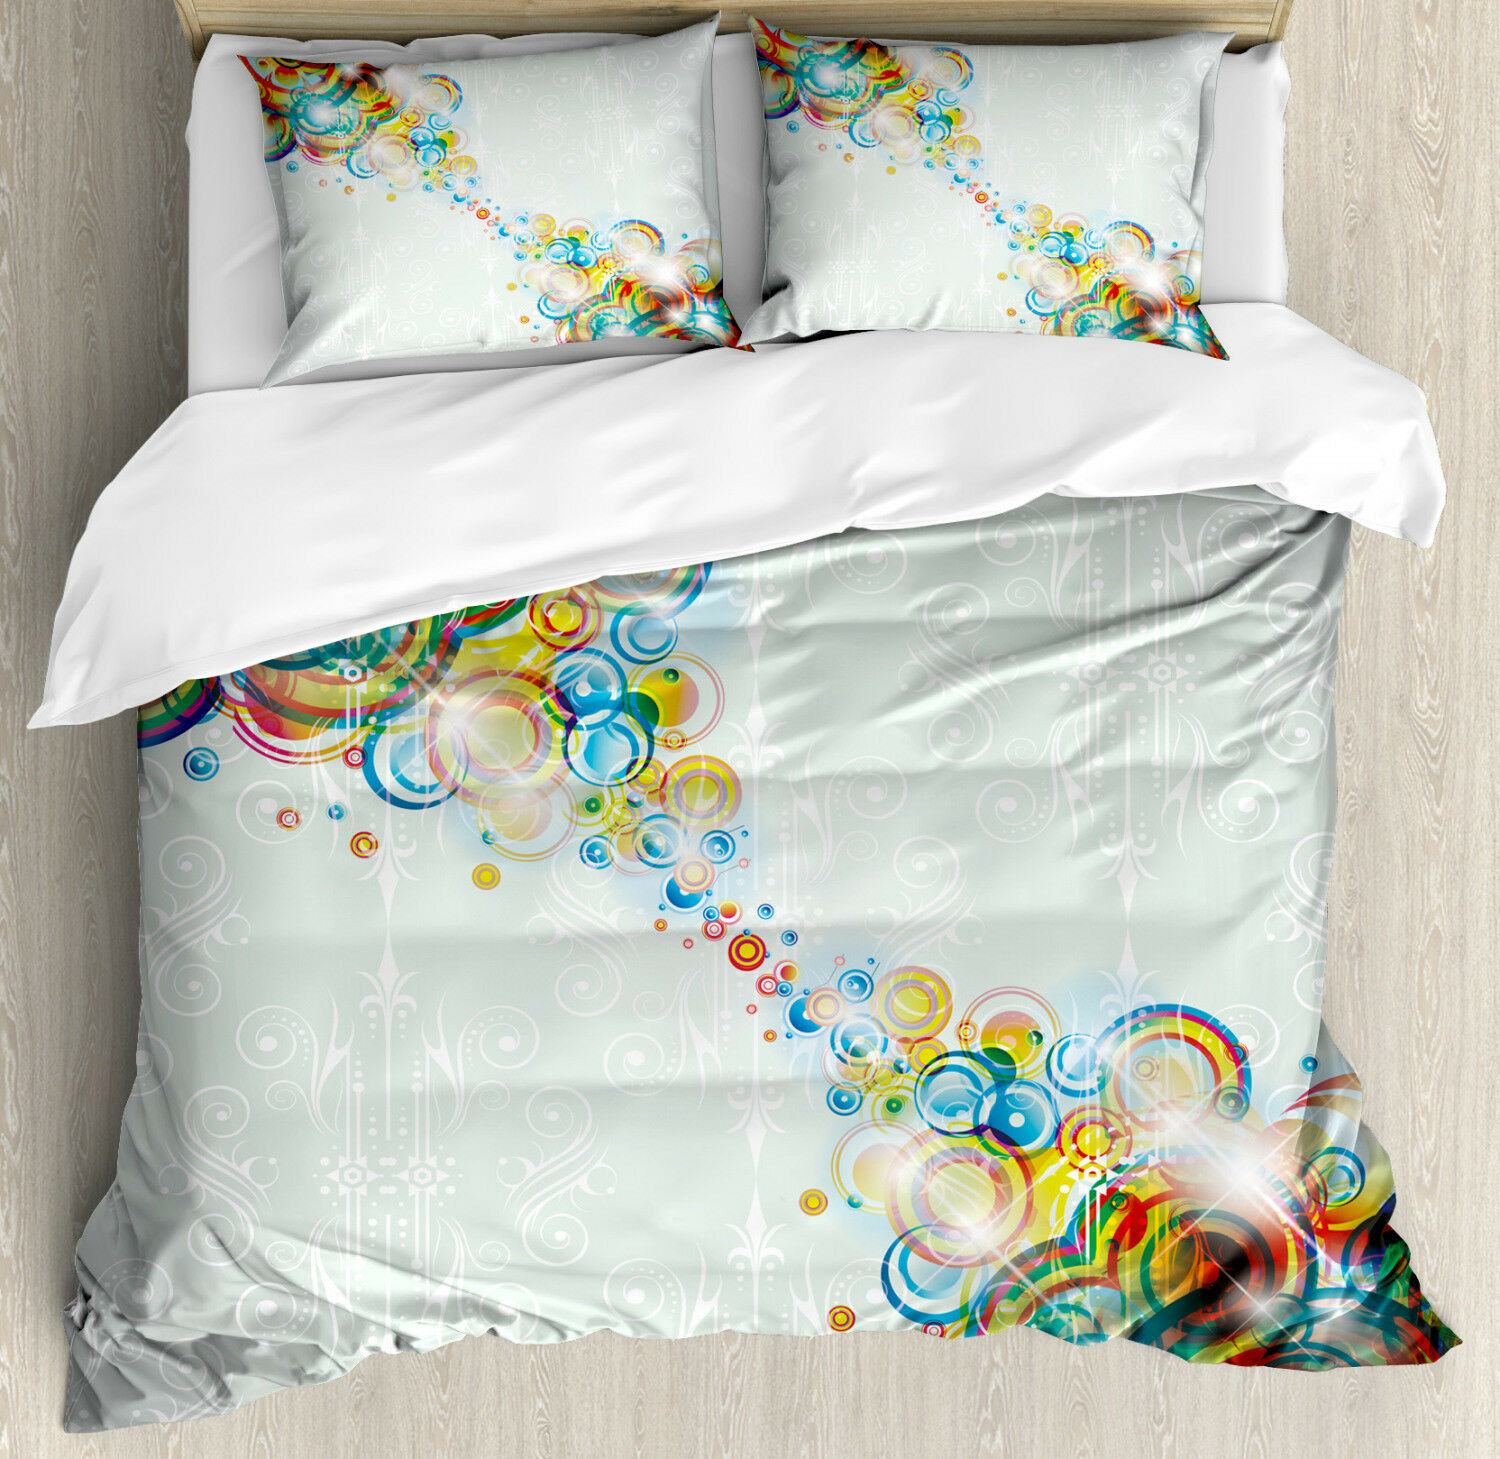 Abstract Duvet Cover Set with Pillow Shams Modern Rainbow Waves Print